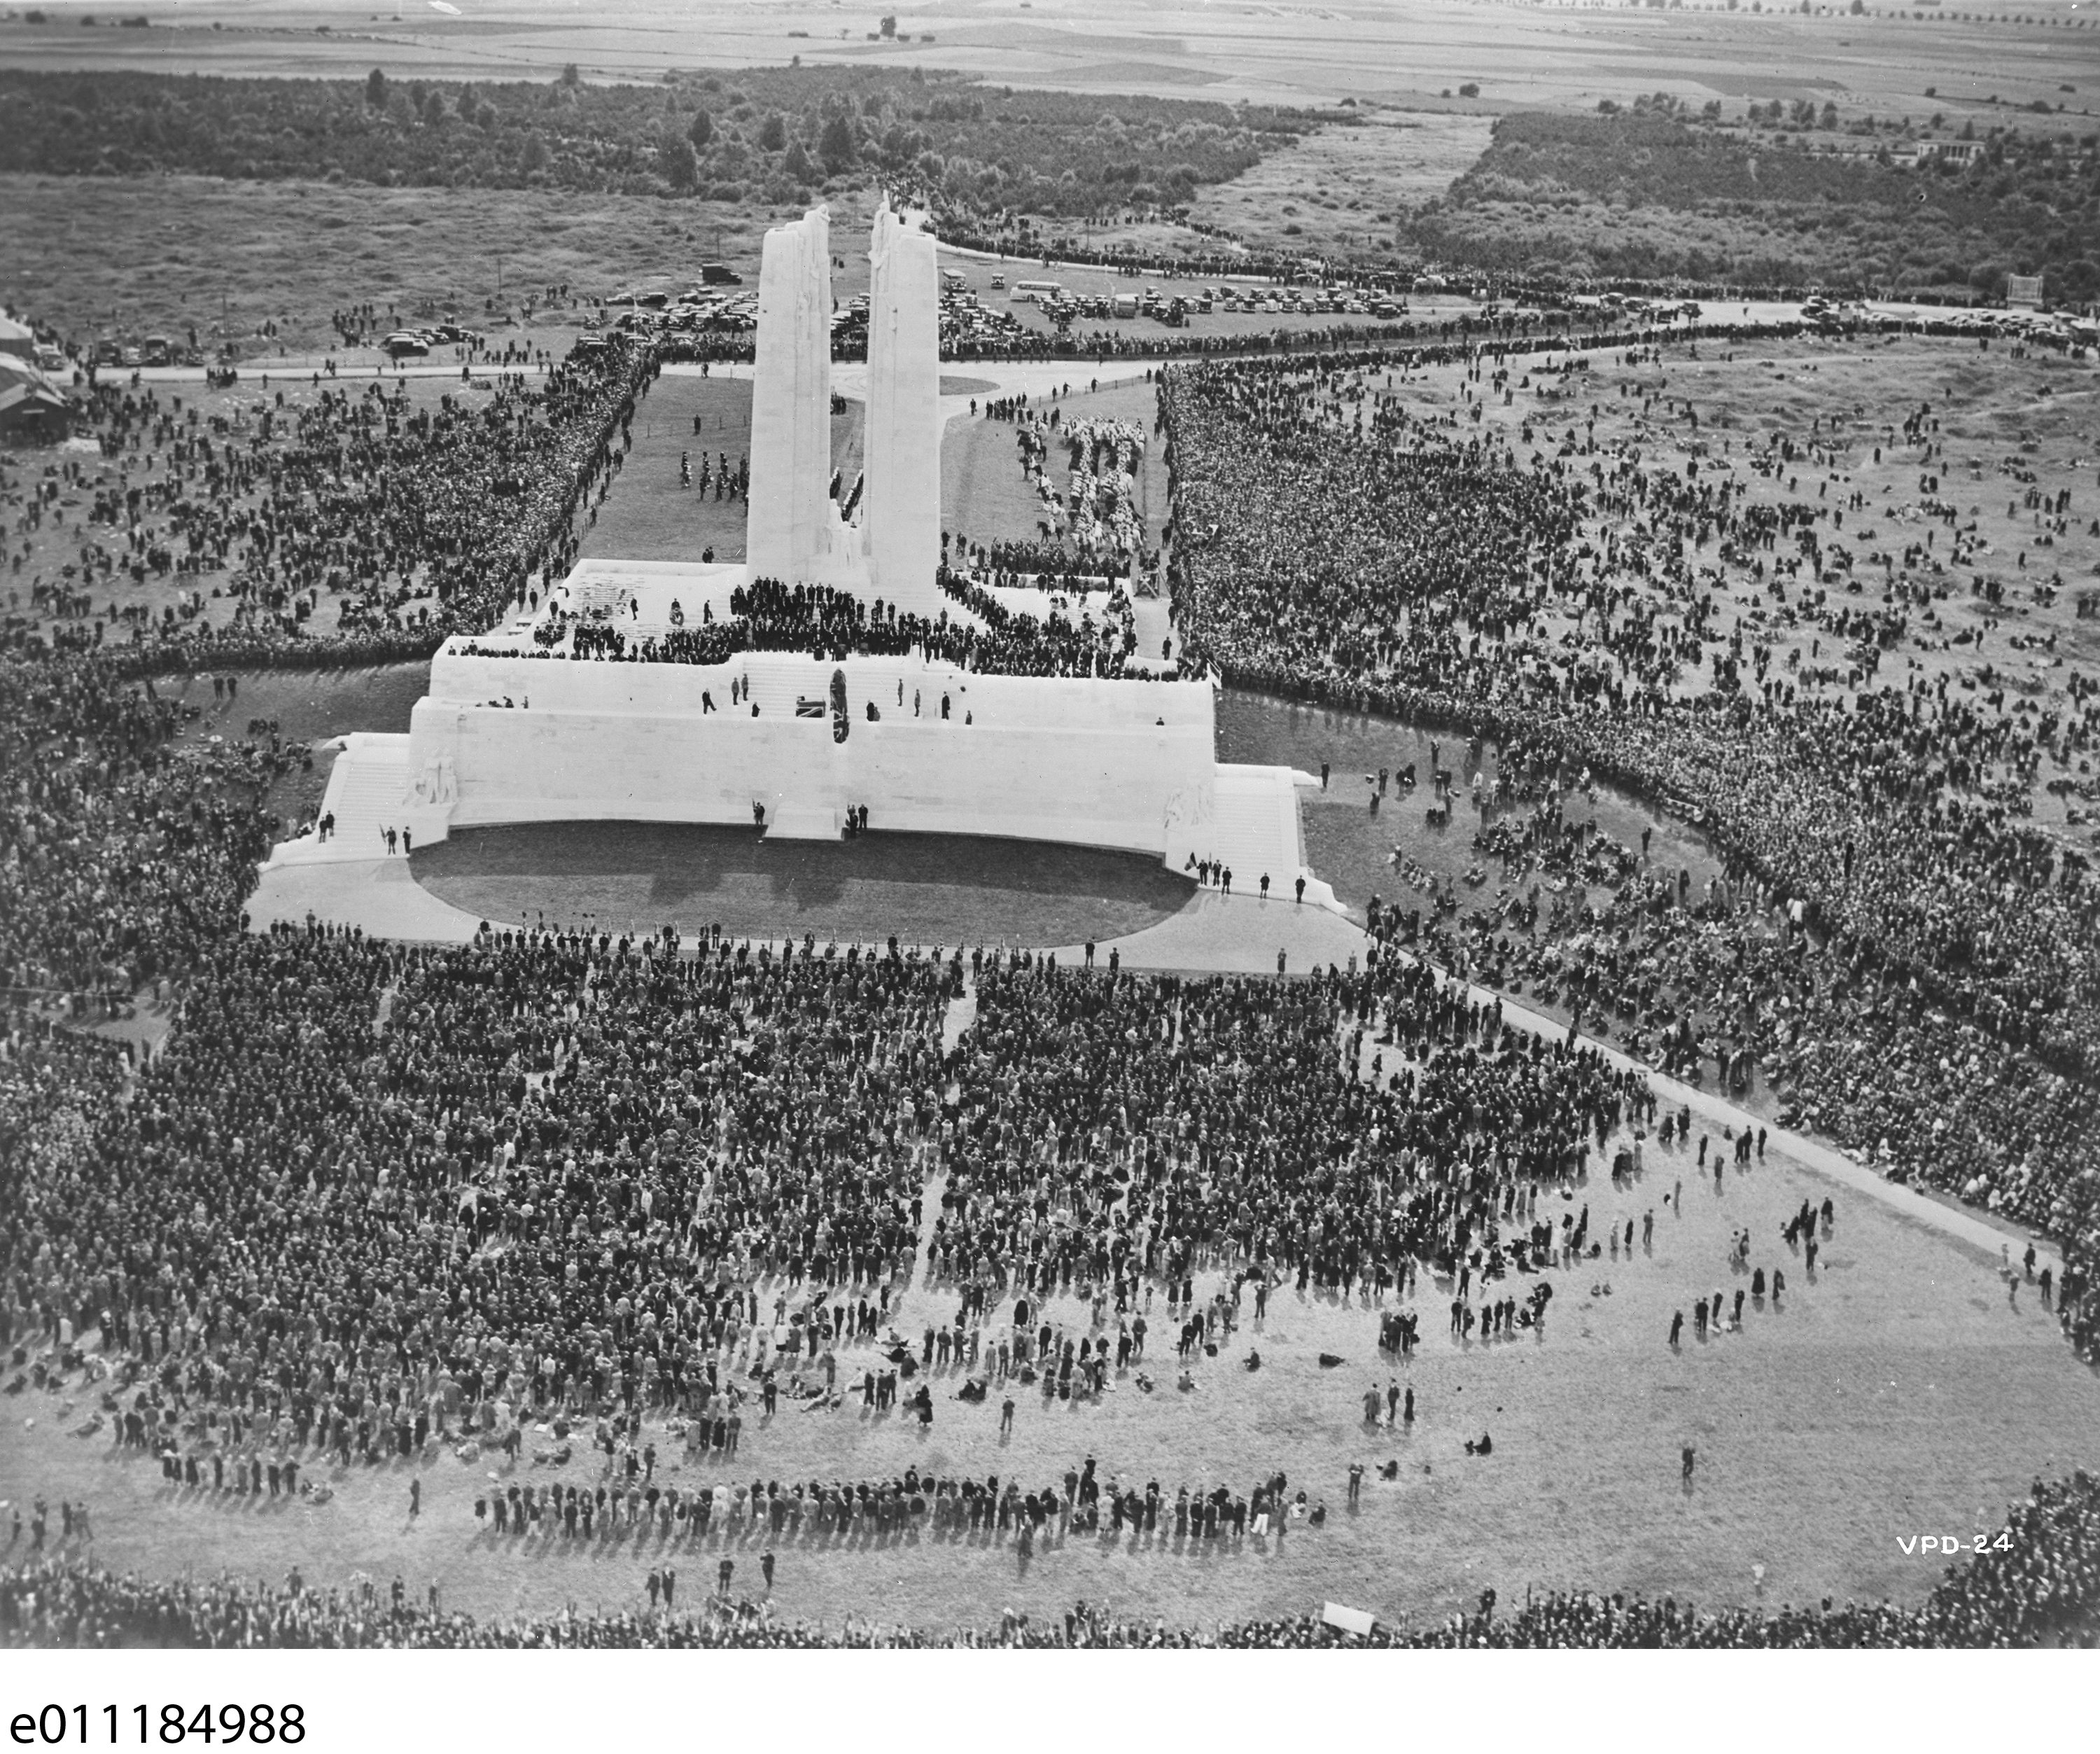 His Majesty King Edward III unveils the Canadian National Memorial at Vimy Ridge. Image courtesy Library and Archives Canada